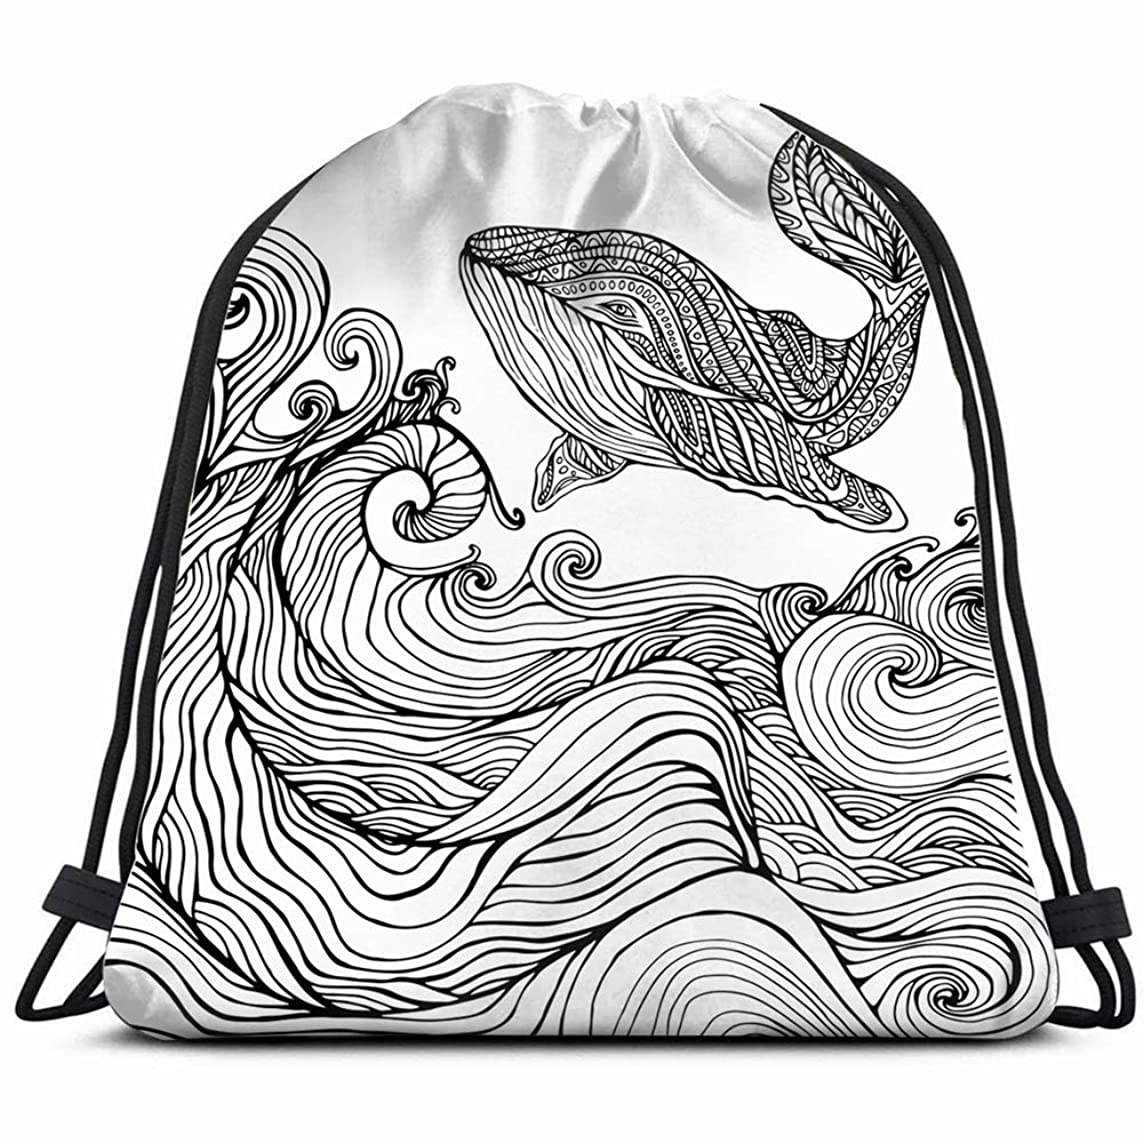 whale ocean waves coloring page children animals wildlife Drawstring Backpack Bag Gym sack Sport Beach Daypack for Girls Men & Women Teen Dance Bag Cycling Hiking Team Training 17X14 Inch